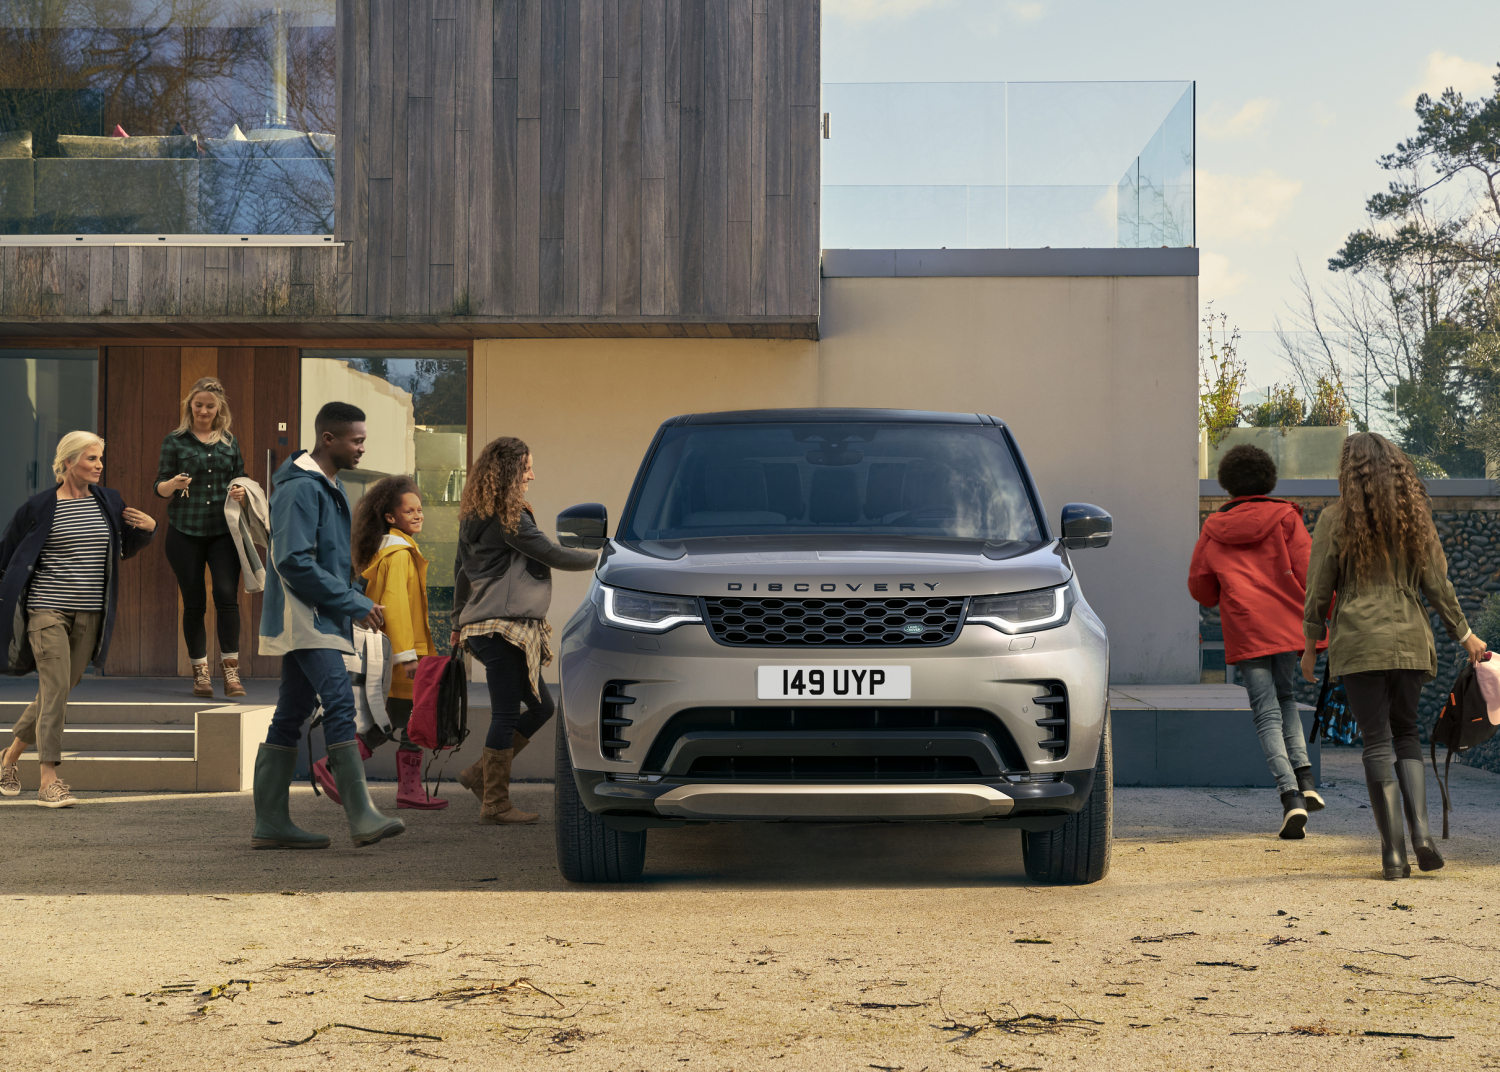 Project Discovery: Land Rover Commissions Global Research Revealing Importance of Close Family Ties, Curiosity and Exploration - Image 2